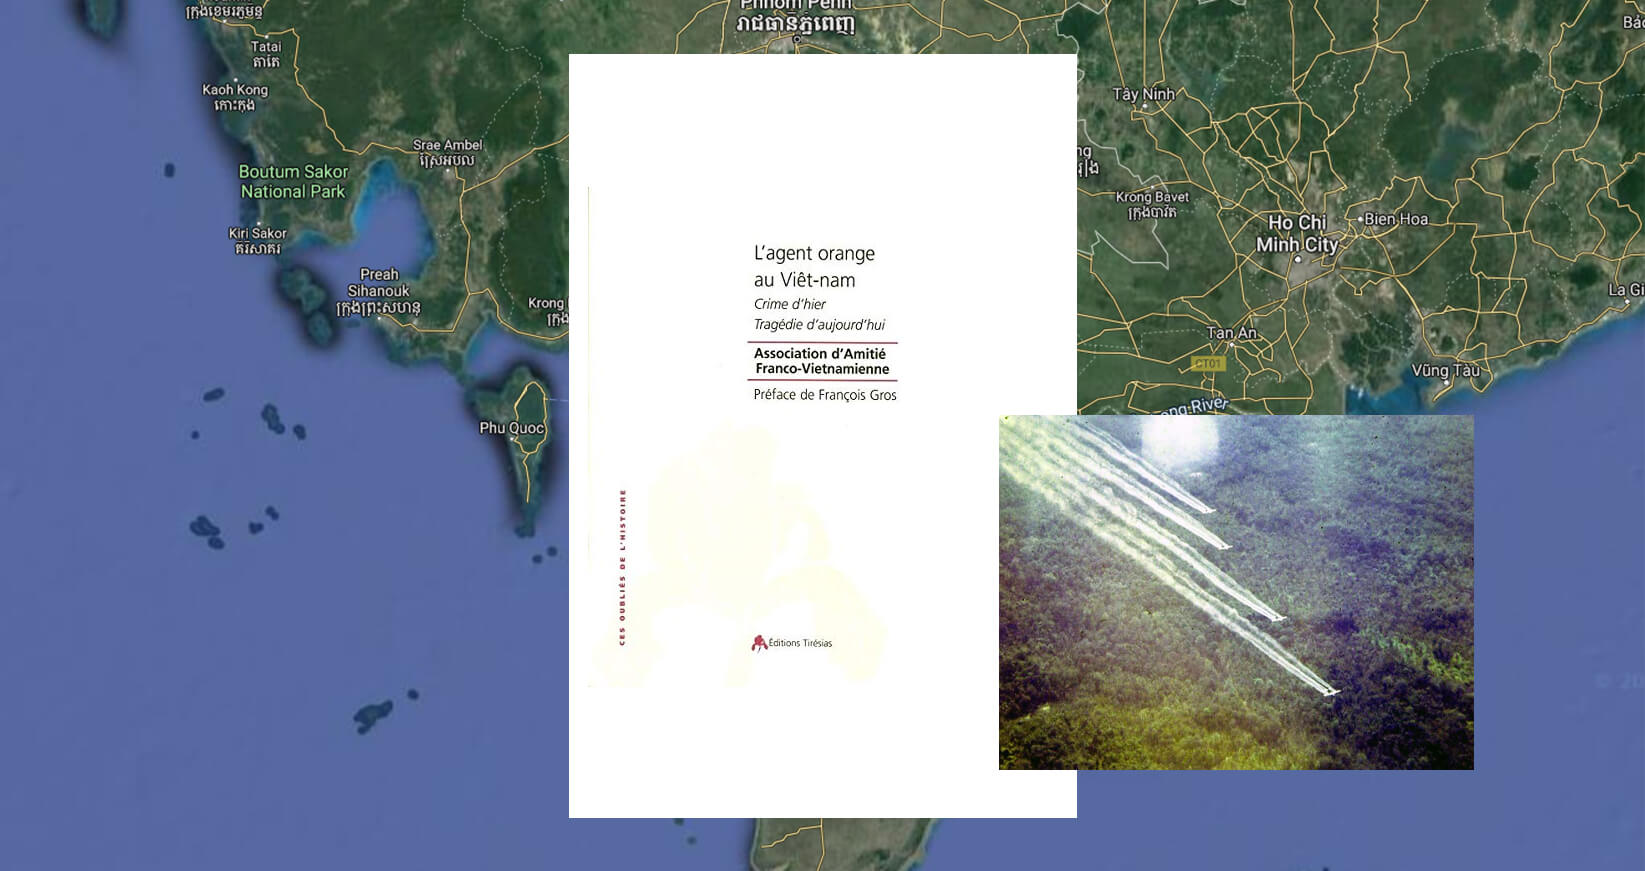 Book in French: Agent orange in Vietnam: Crime of yesterday, tragedy of today